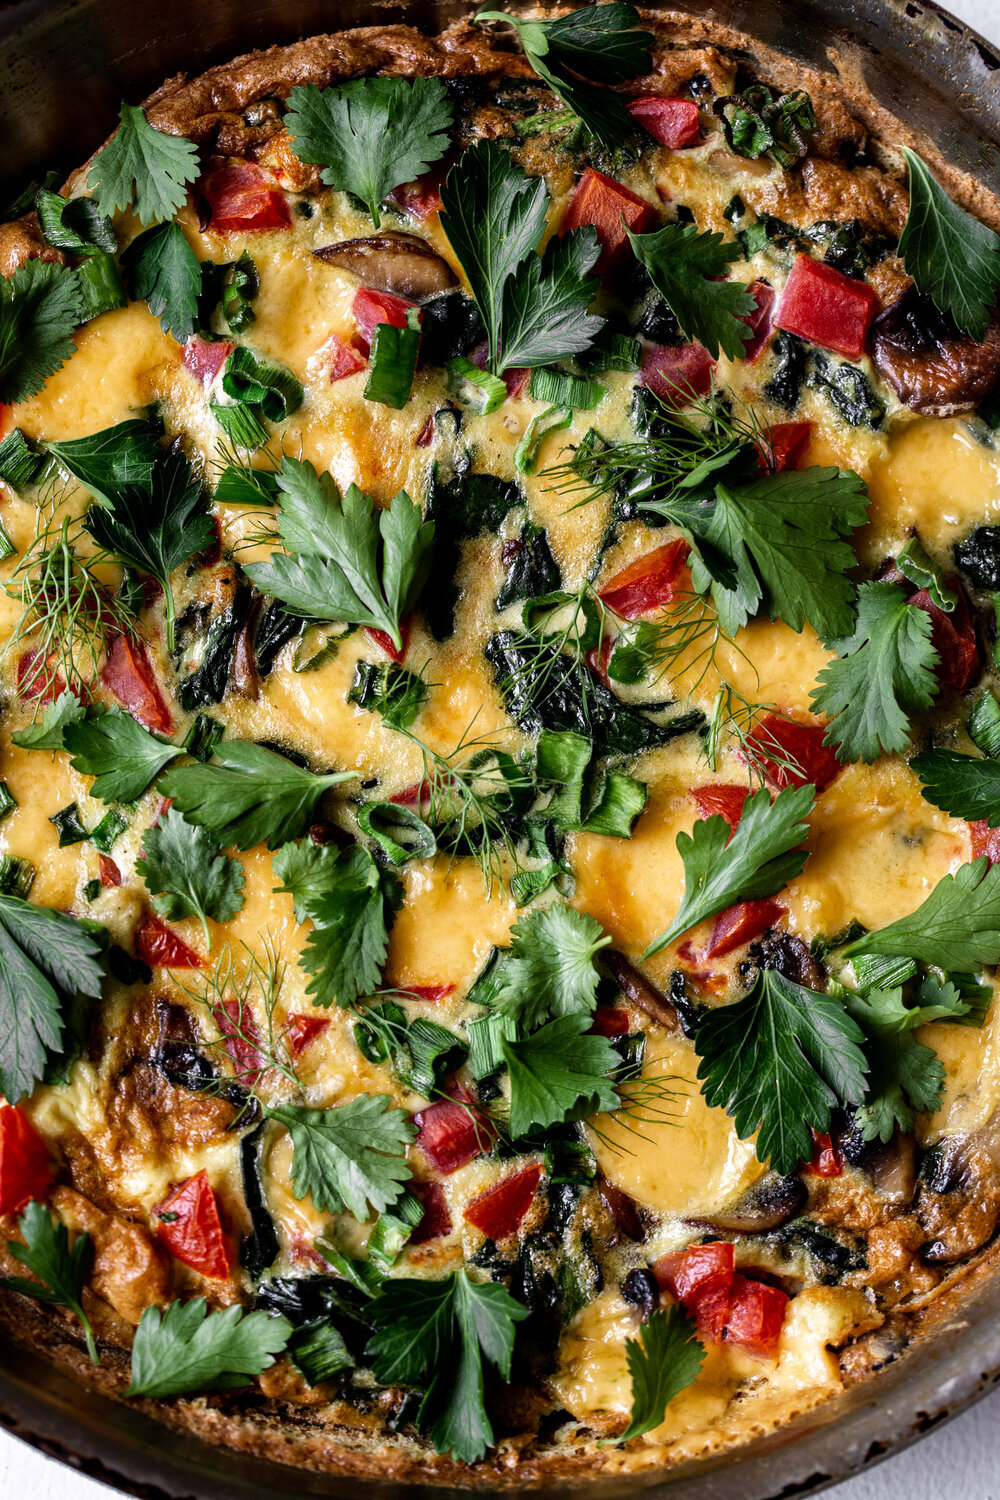 - Veggie Frittata- This is a great recipe because it's so flexible – toss in whatever veggies (or even meat) you have leftover.